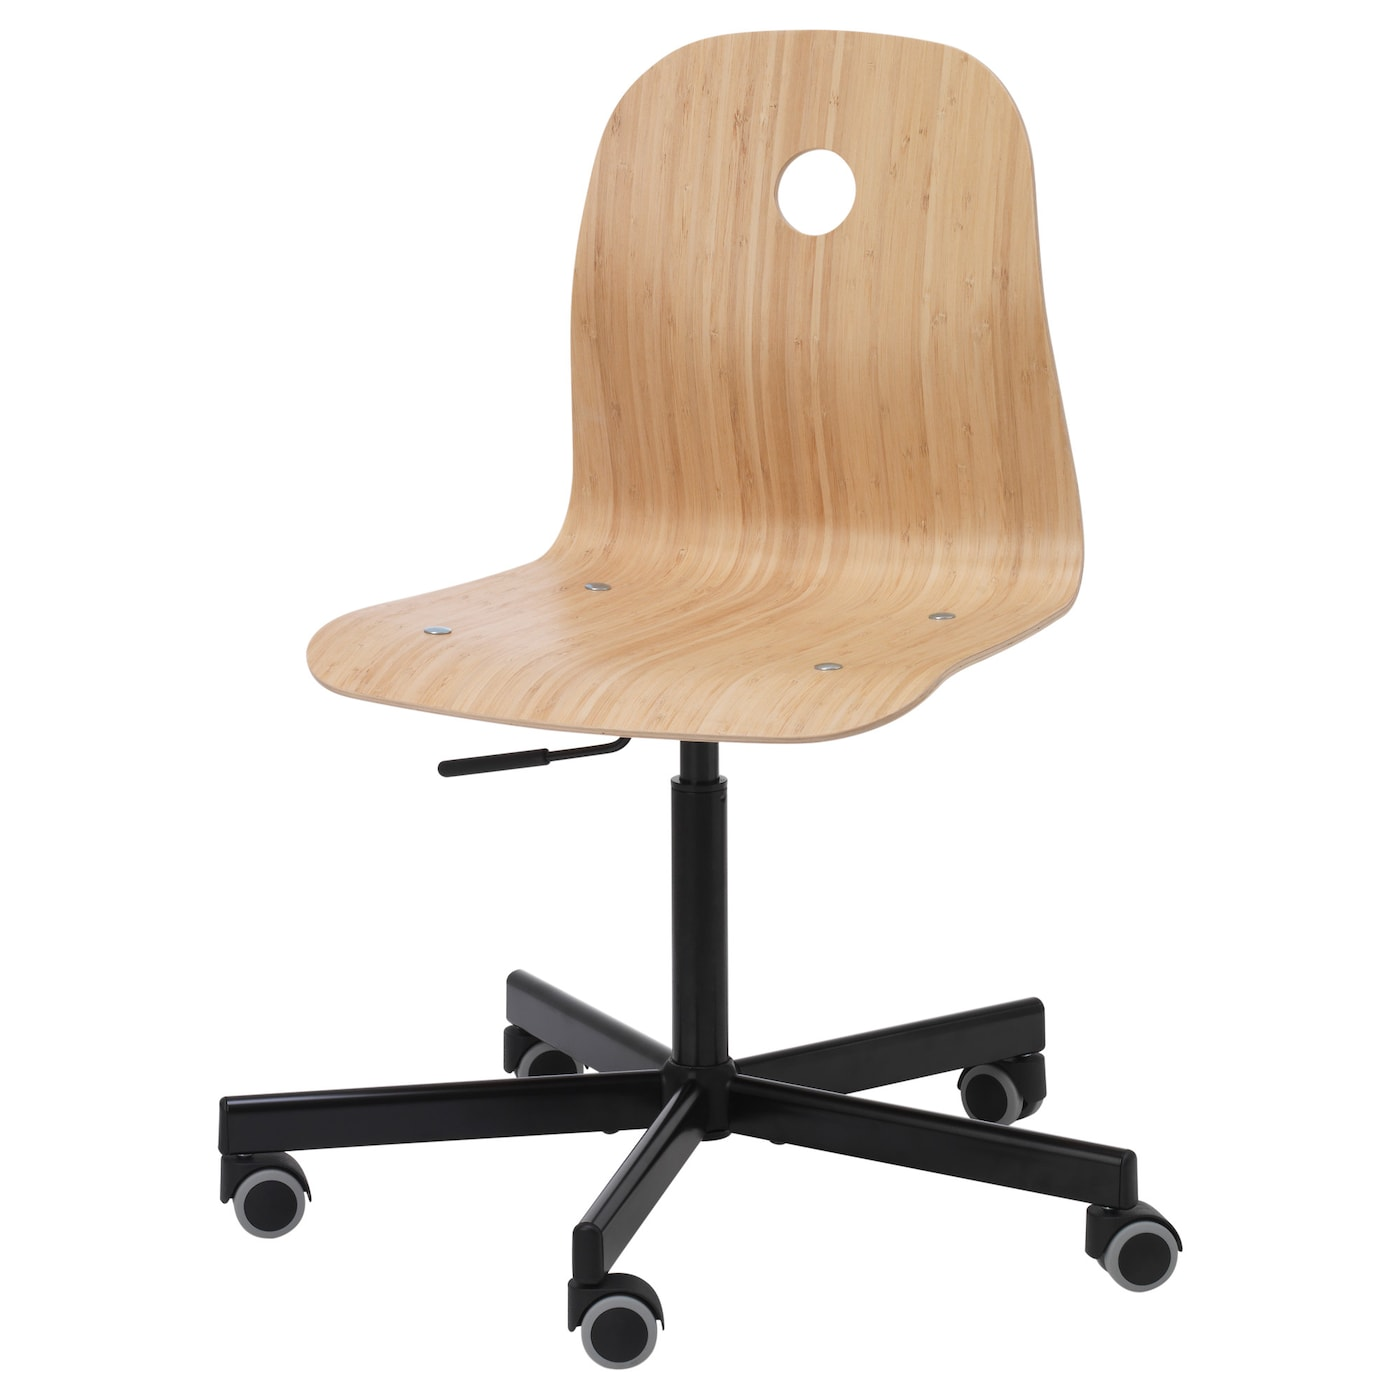 ikea swivel chair you sit comfortably since the chair is adjustable in height